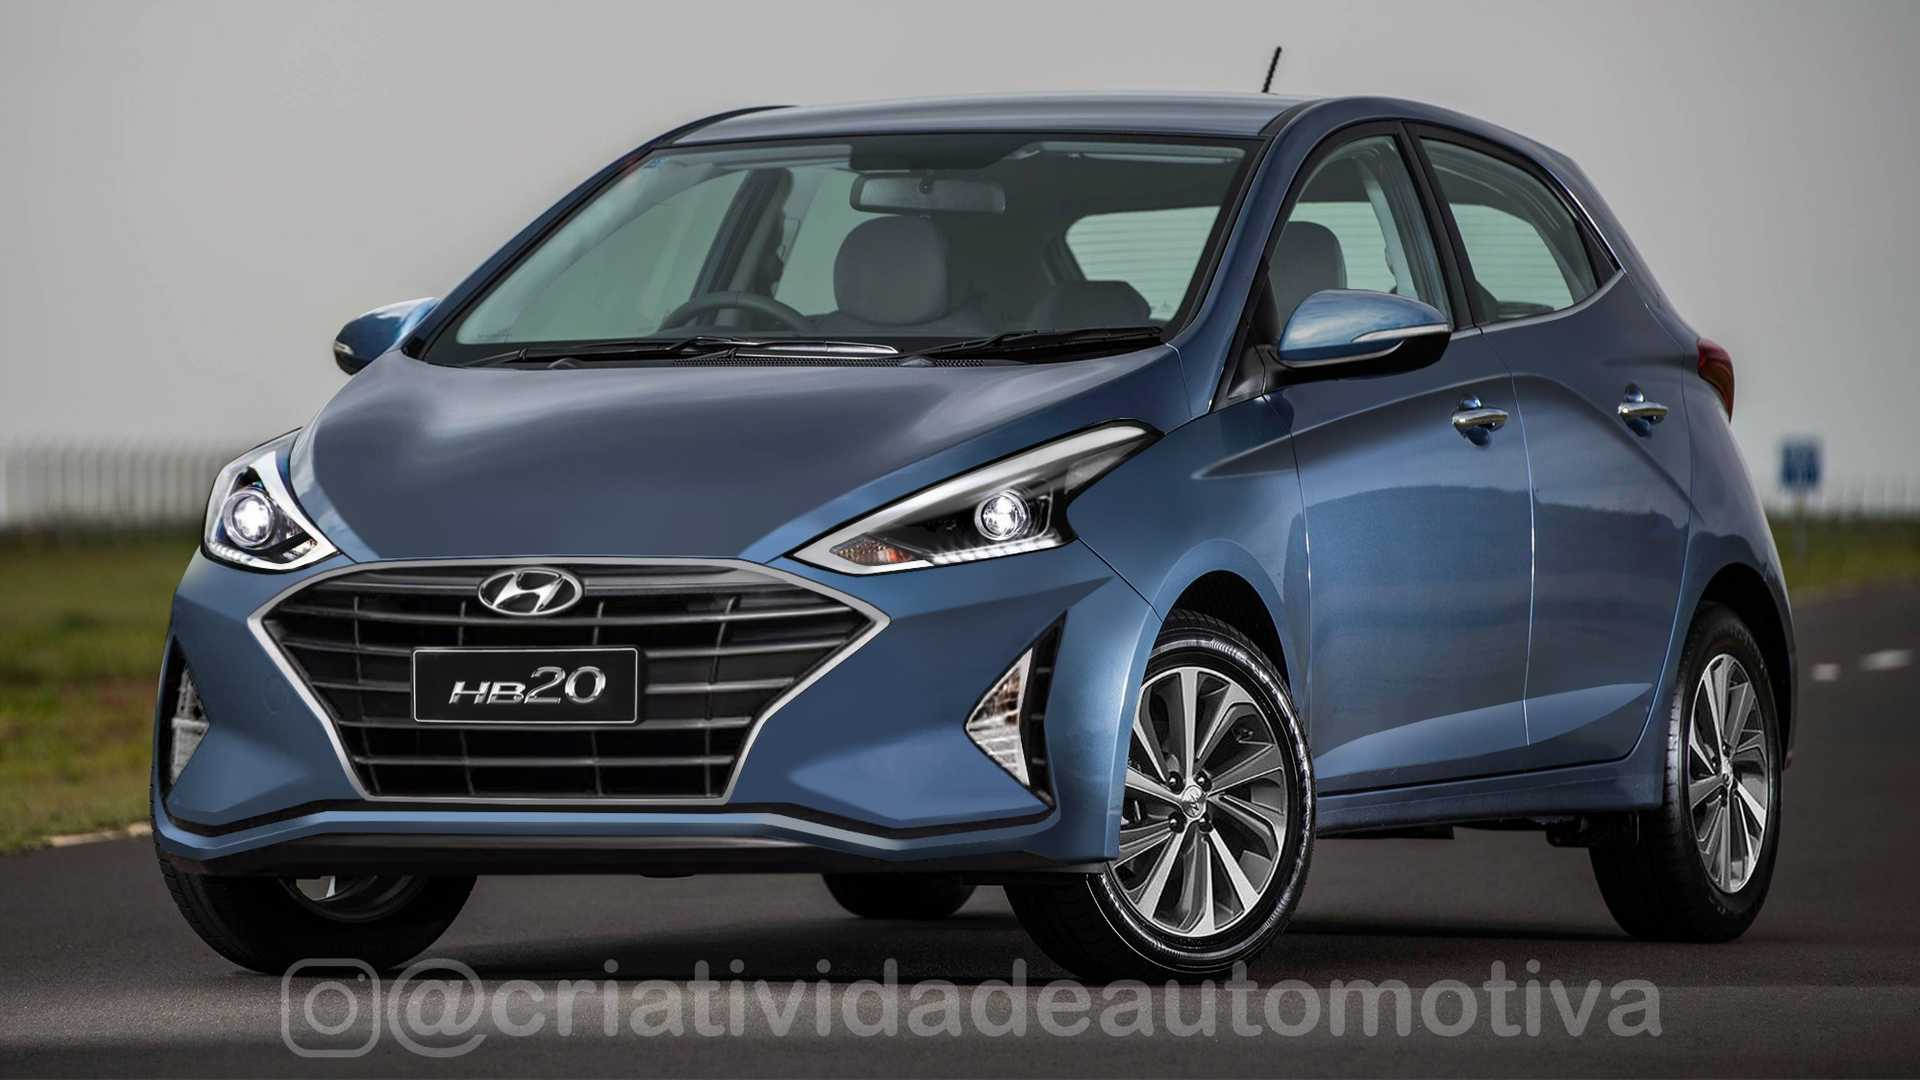 87 The Hyundai Hb20 2020 Price And Review